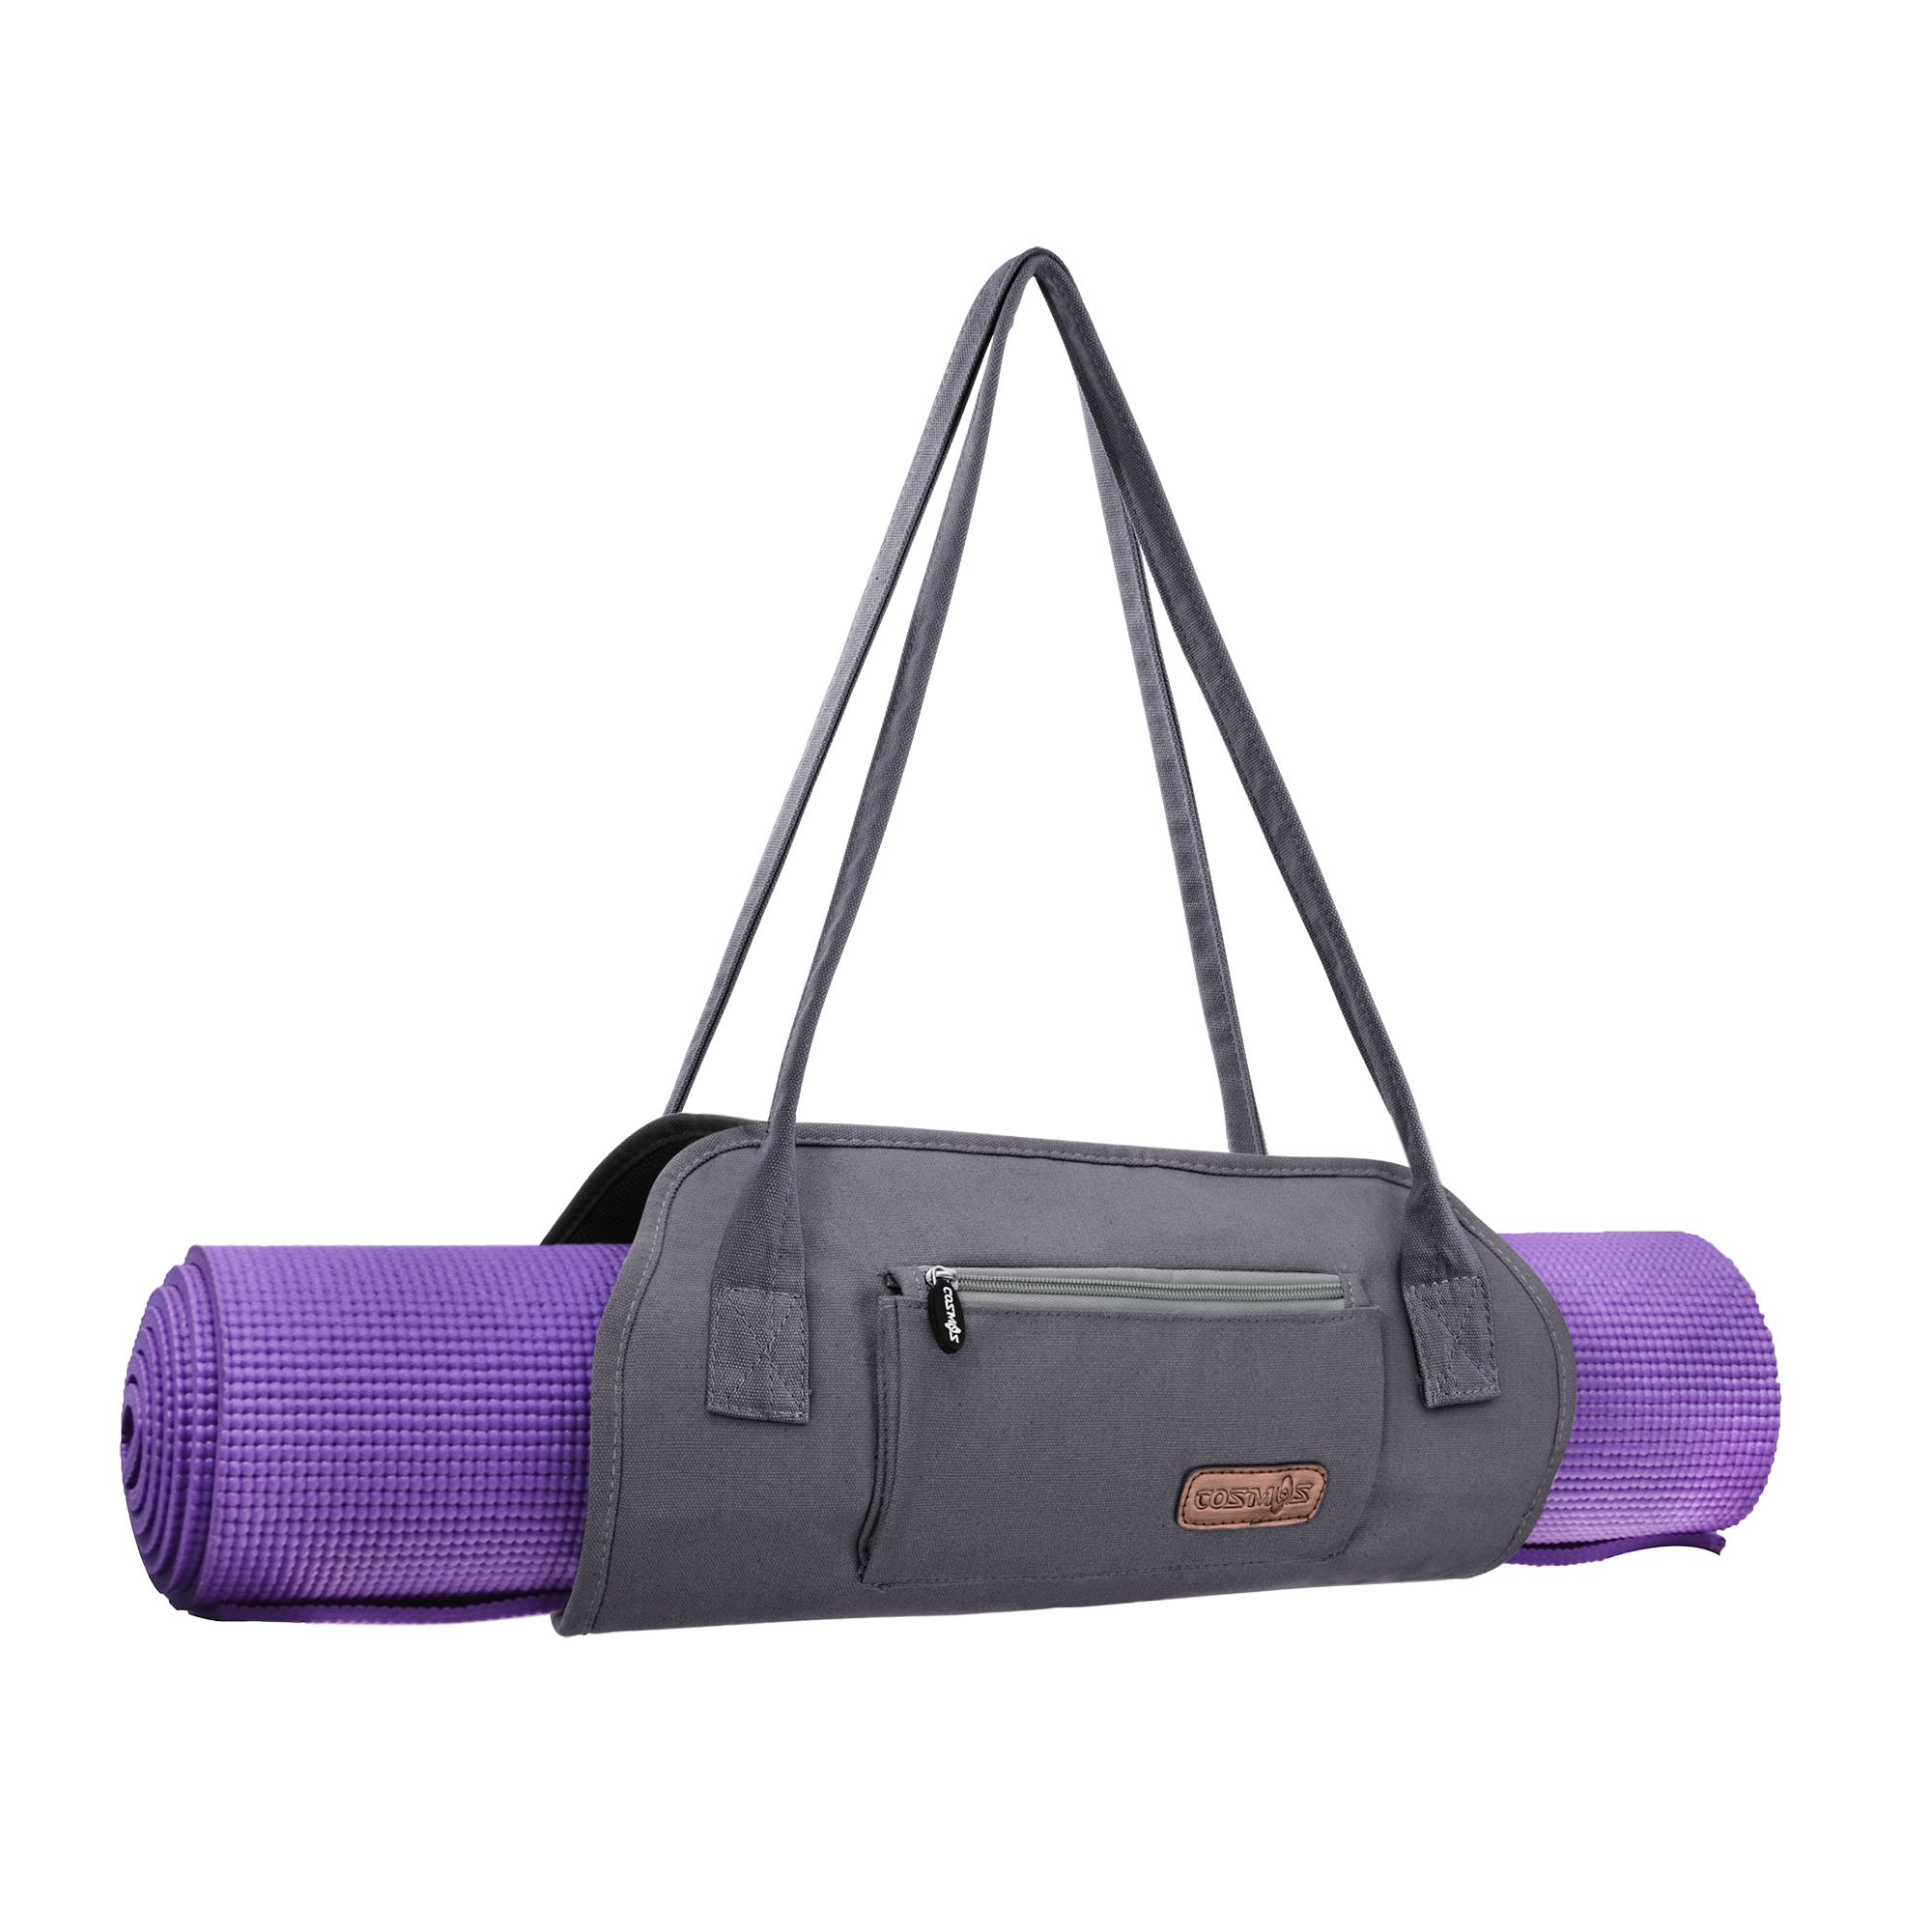 Cosmos Exercise Yoga Mat Carrying Shoulder Strap Bag with Internal and Outside Storge Pocket (Yoga Mat is NOT Included) by Cosmos (Image #1)